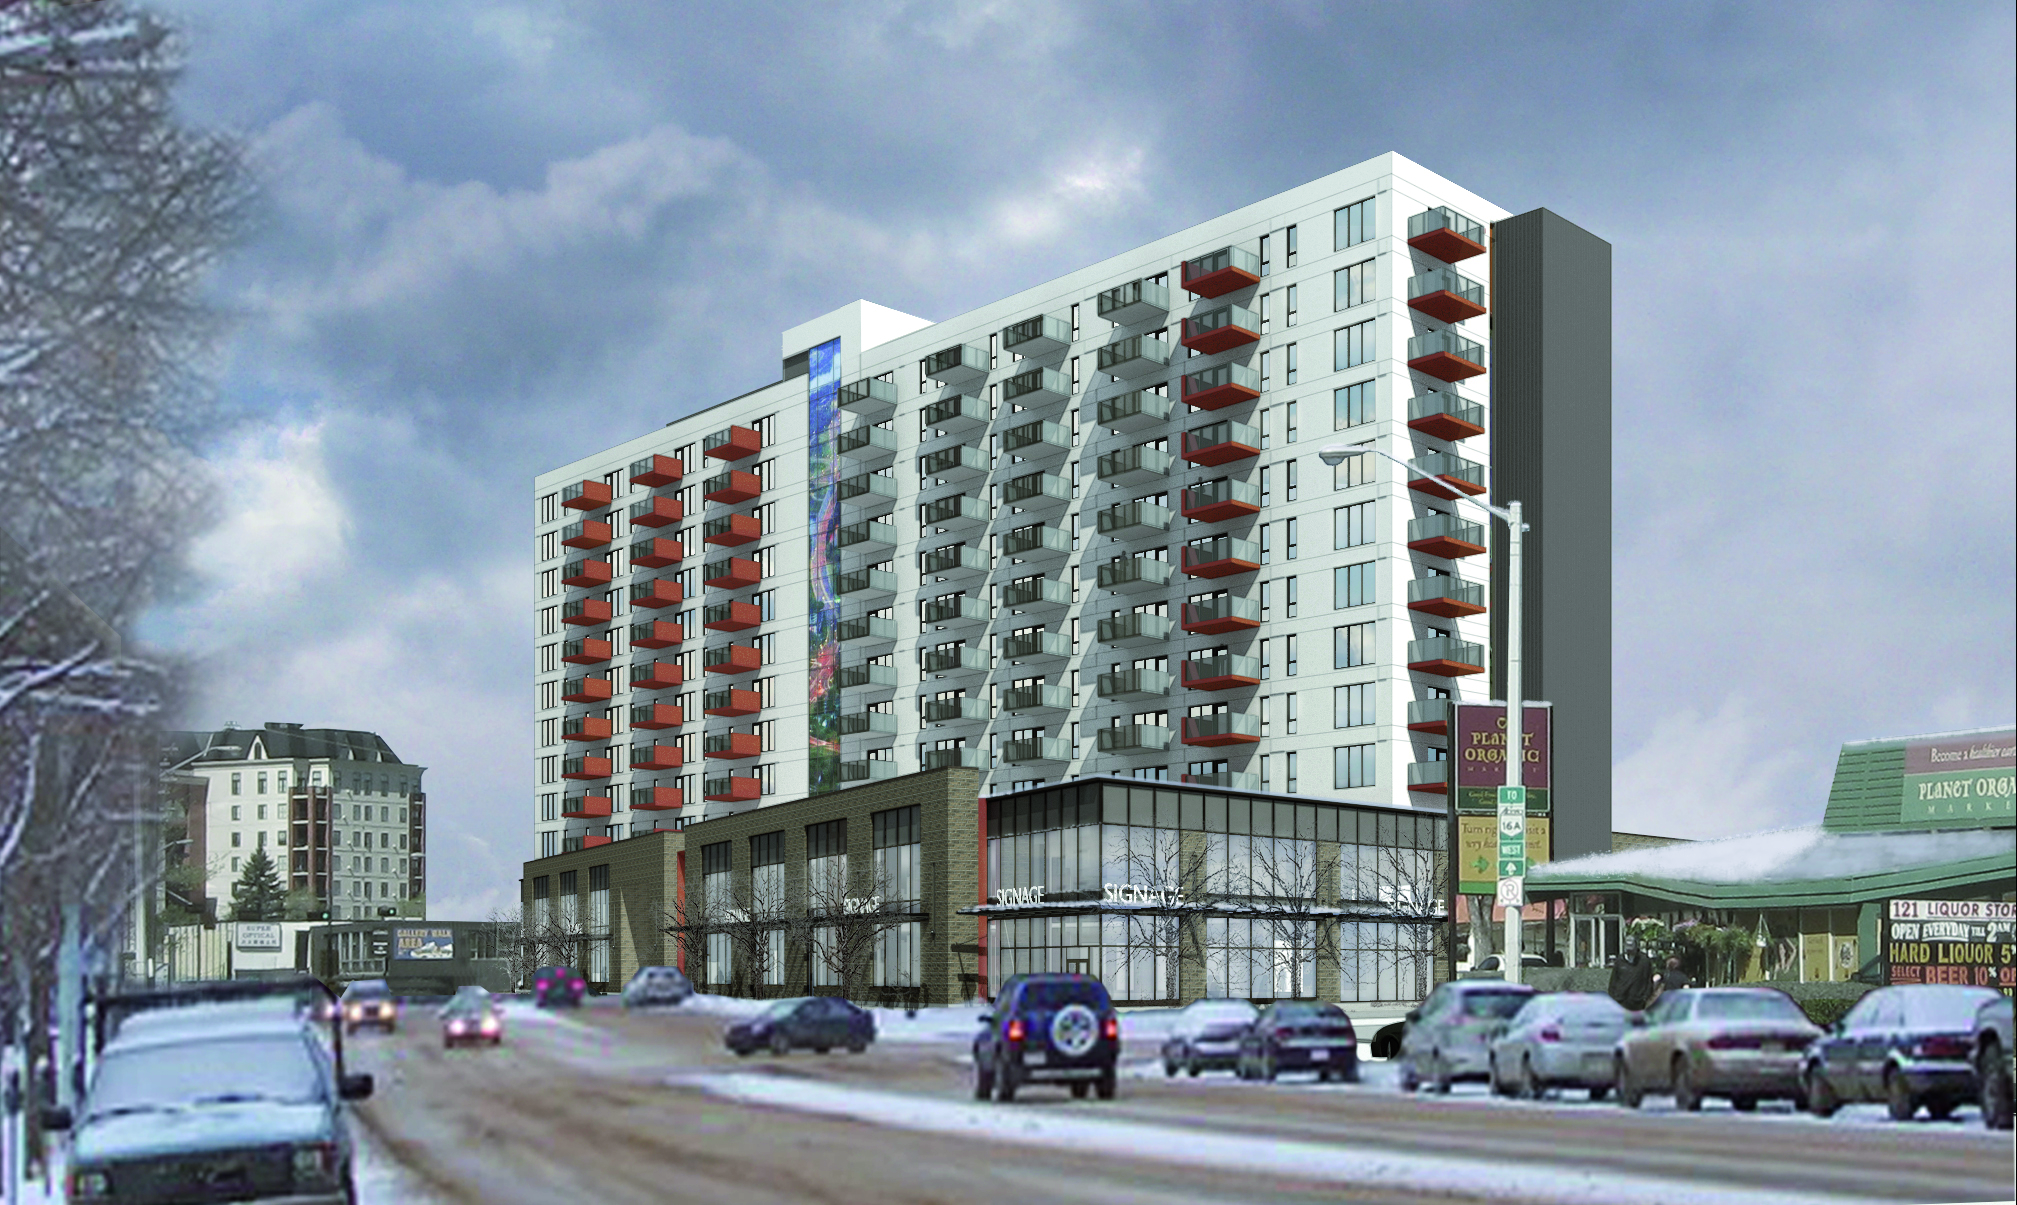 A vision of J22, one of several forthcoming rental apartments, atop Planet Organic's new home. (Image: DIOLG)